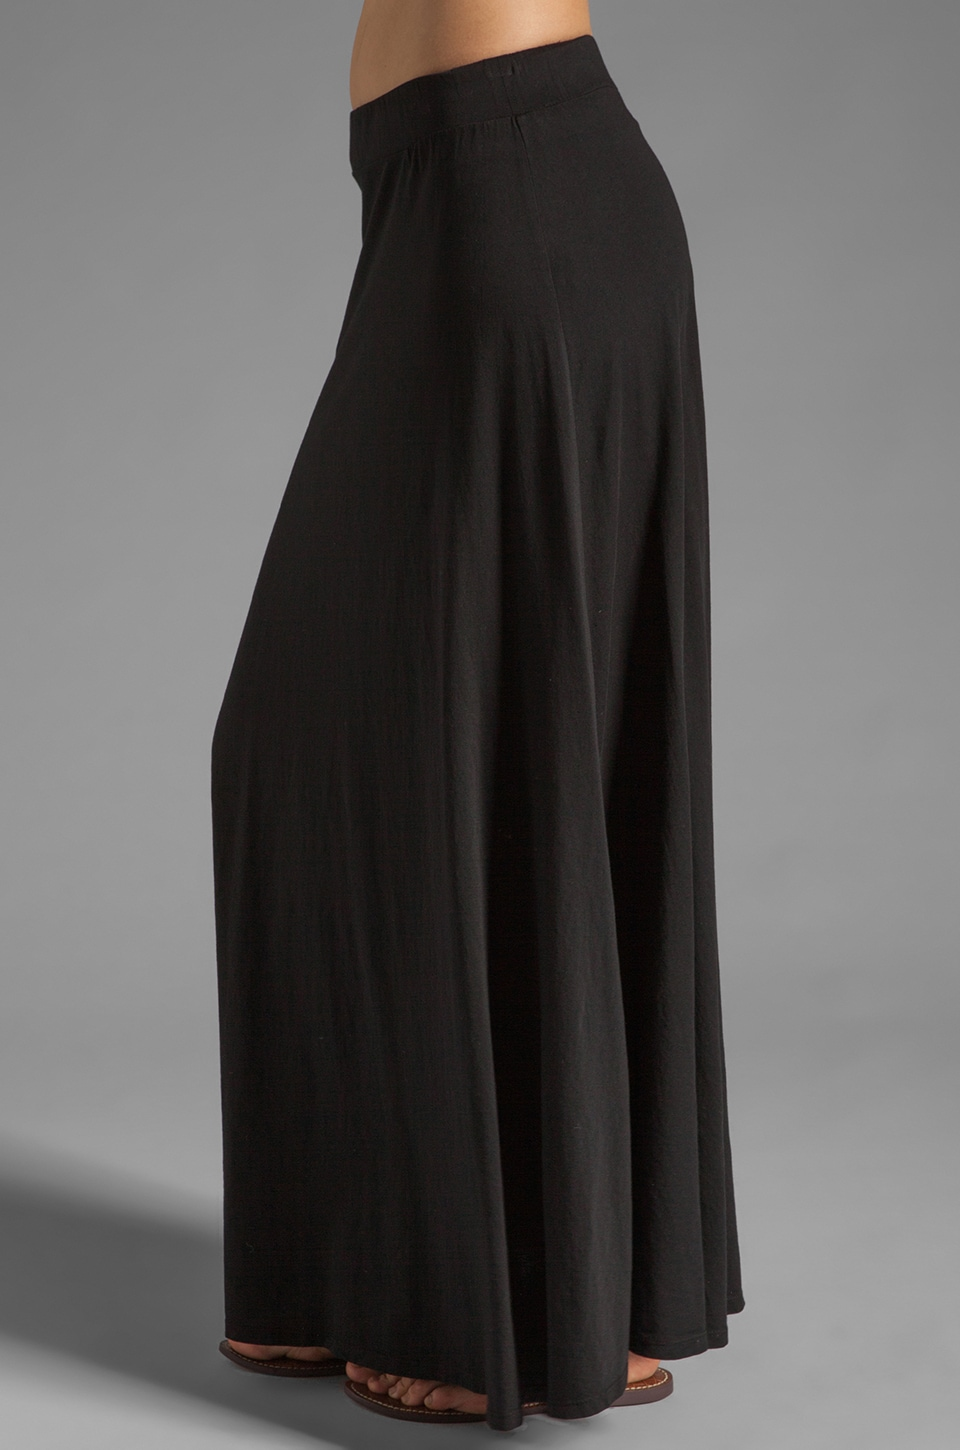 Bobi Supreme Jersey Maxi Skirt in Black